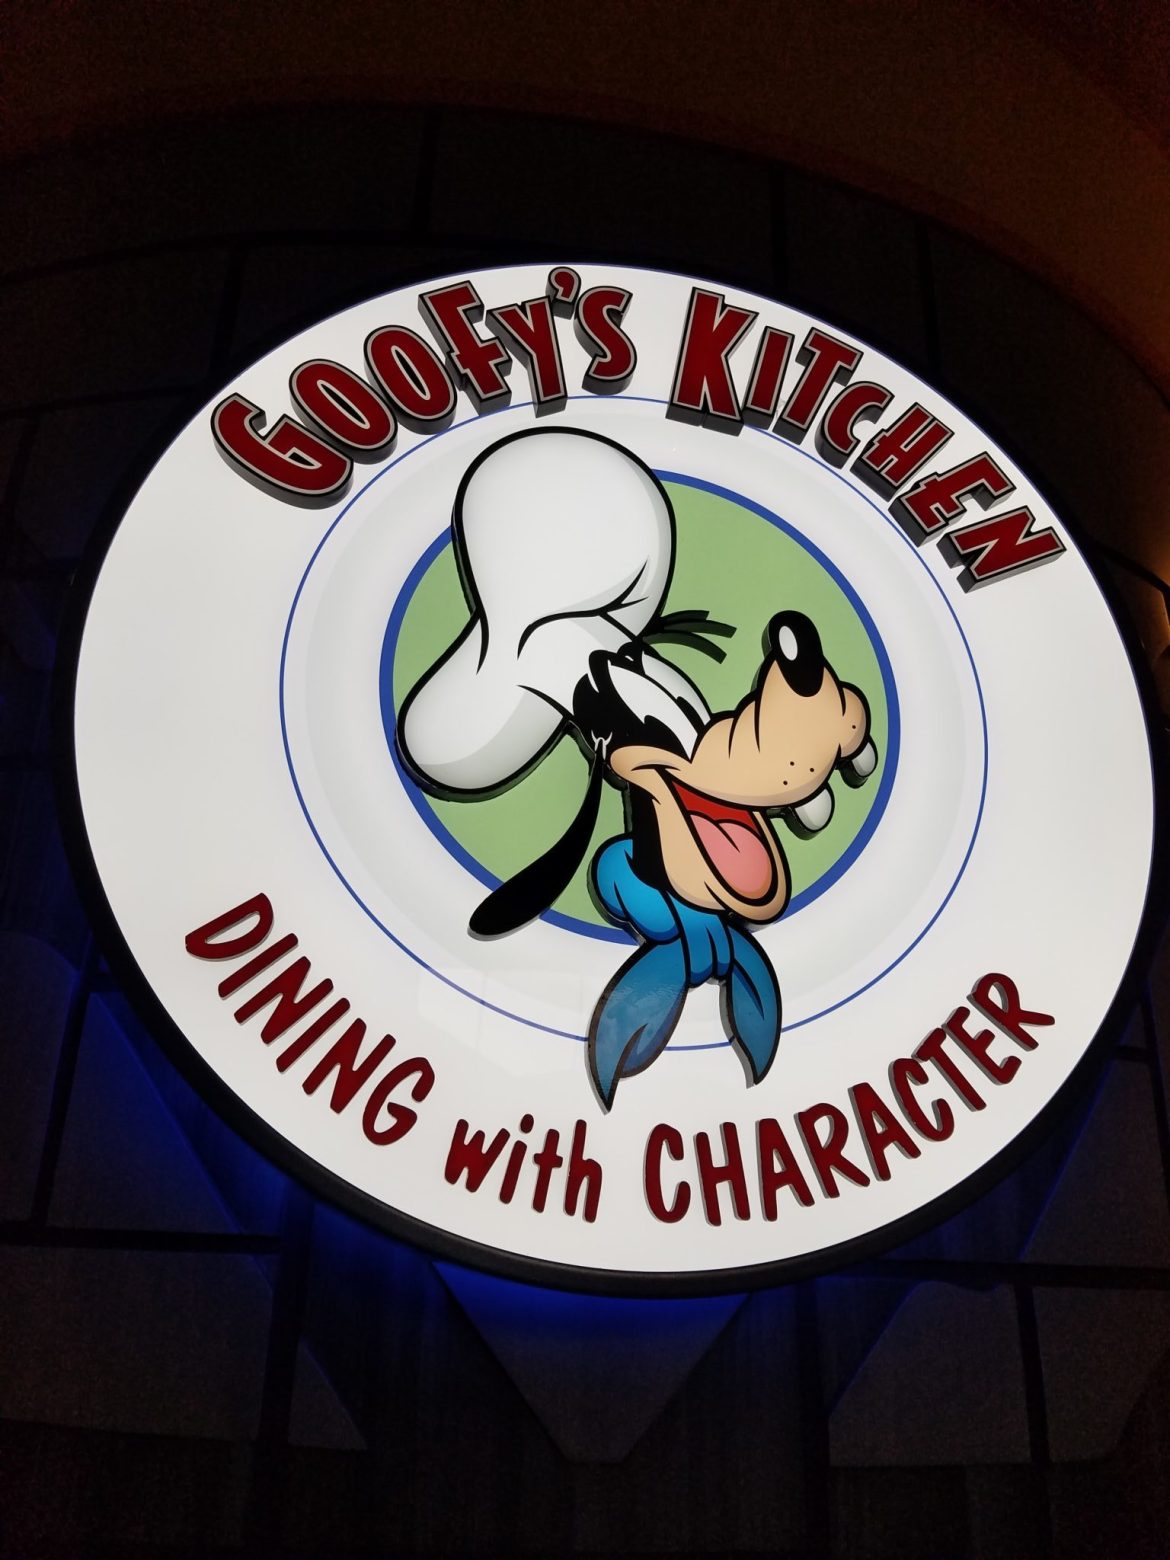 Goofy's Kitchen Offers Abundant Food and Awesome Character Interactions